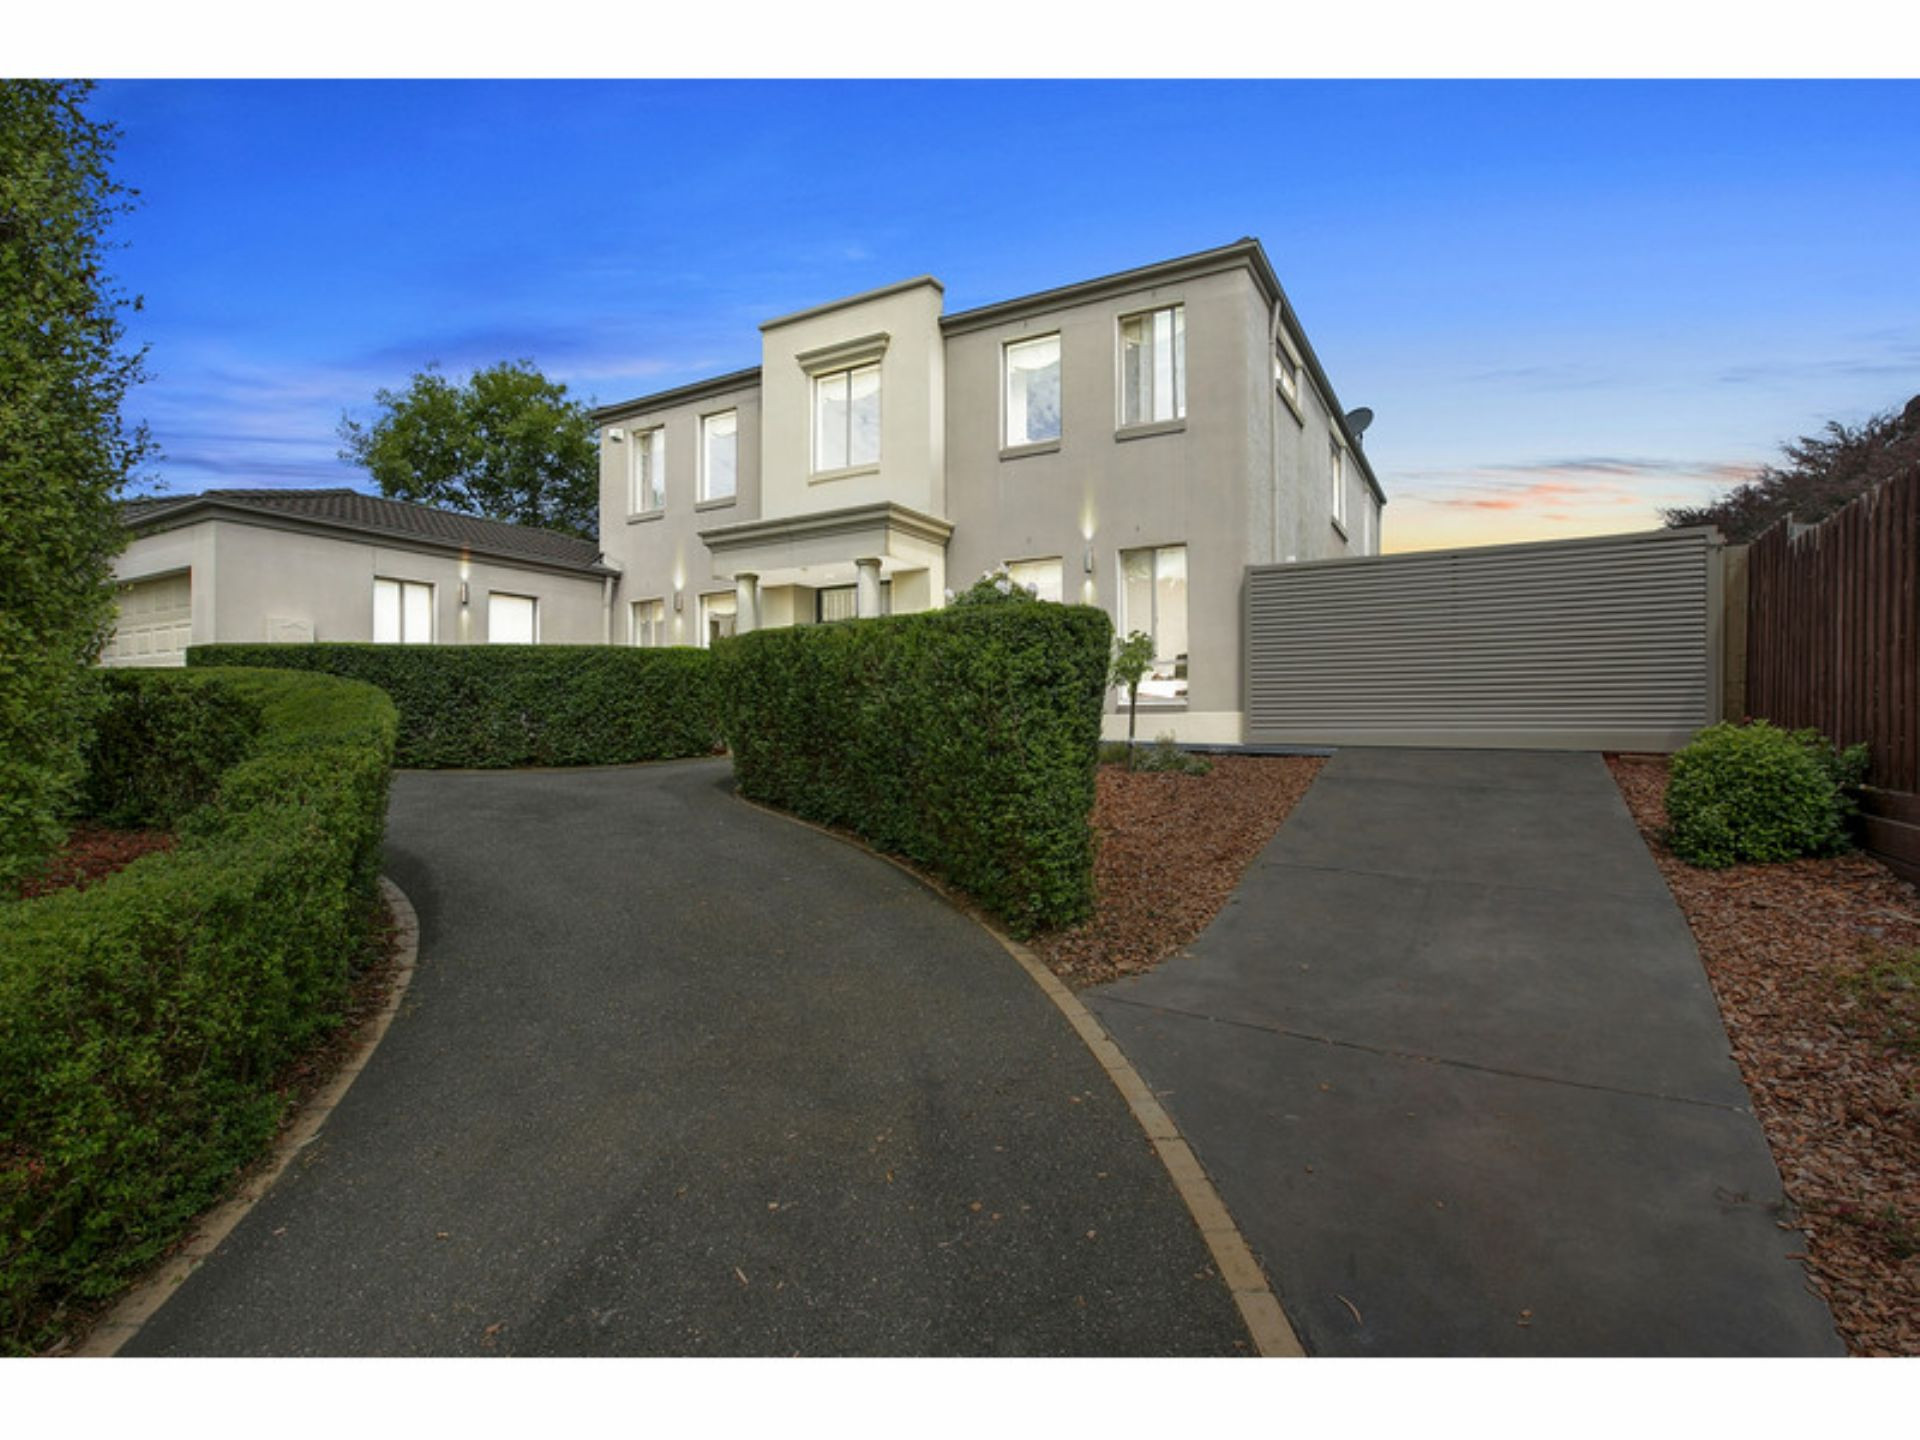 22 Serenity Way, MORNINGTON, VIC, 3931 - Image